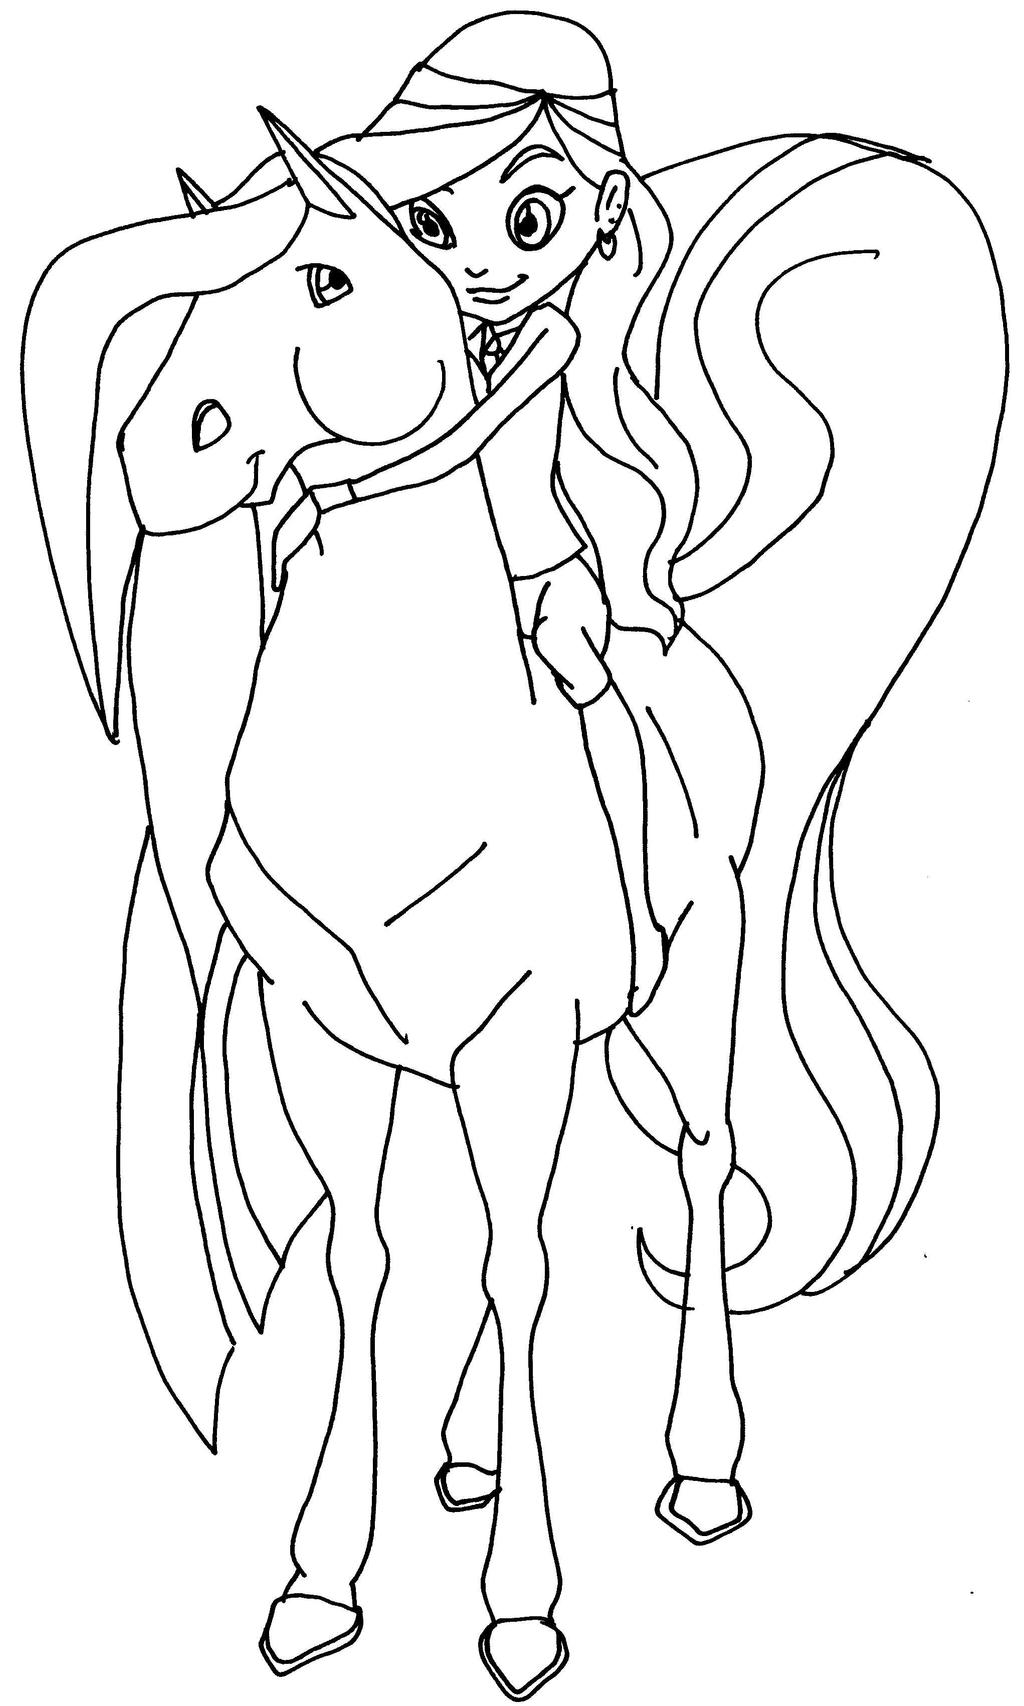 horseland coloring book pages - photo#34